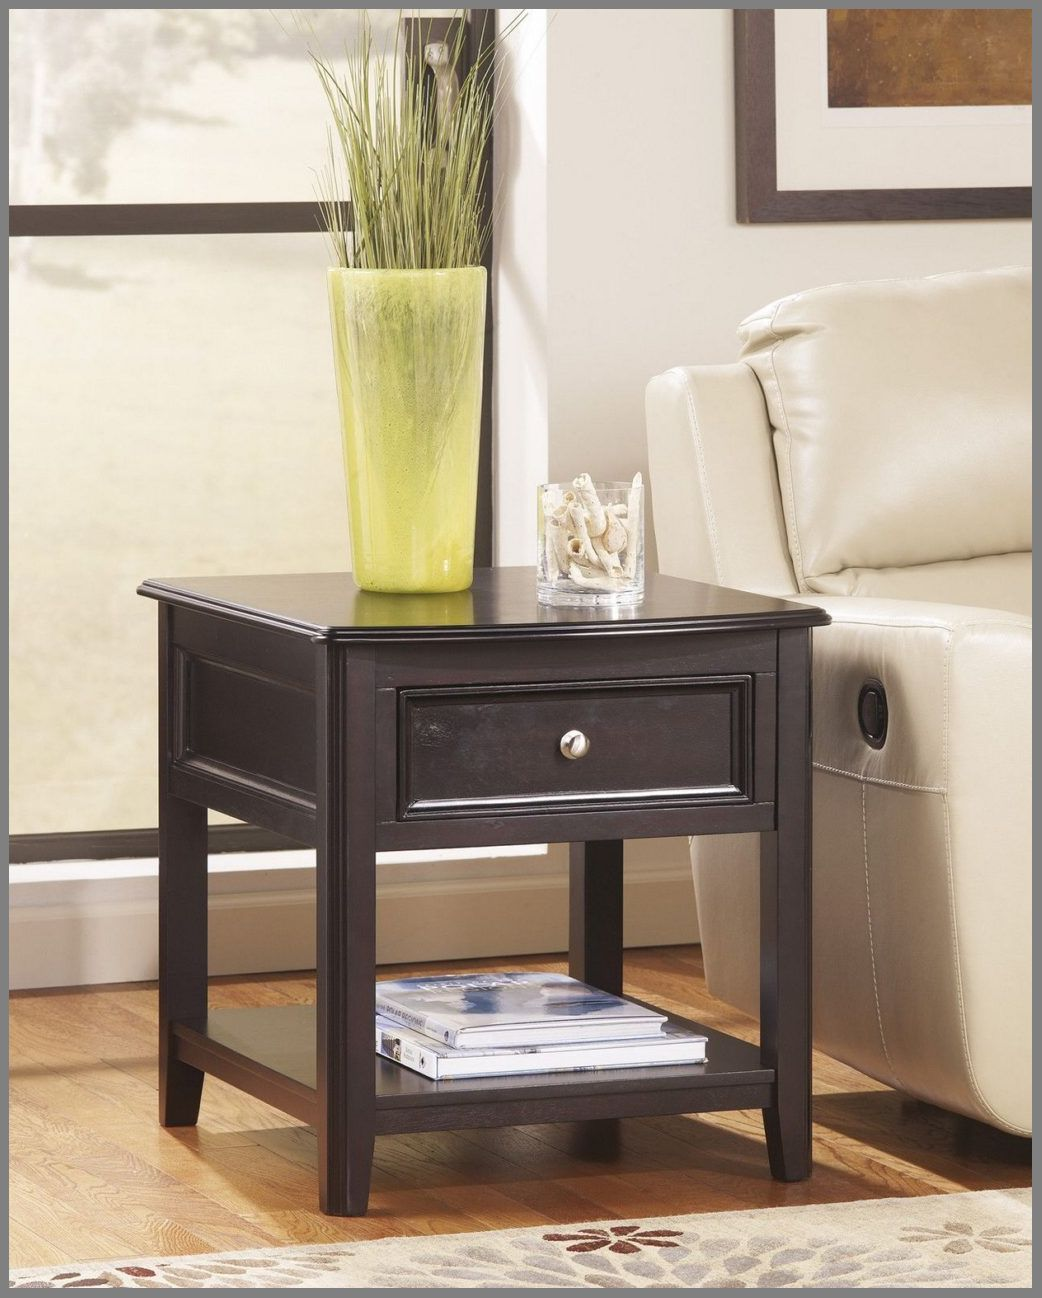 best end tables decorating theme with dark wooden frames and square table ideas harveys oak furniture dog built into human rose gold marble coffee small drawers grey wood side